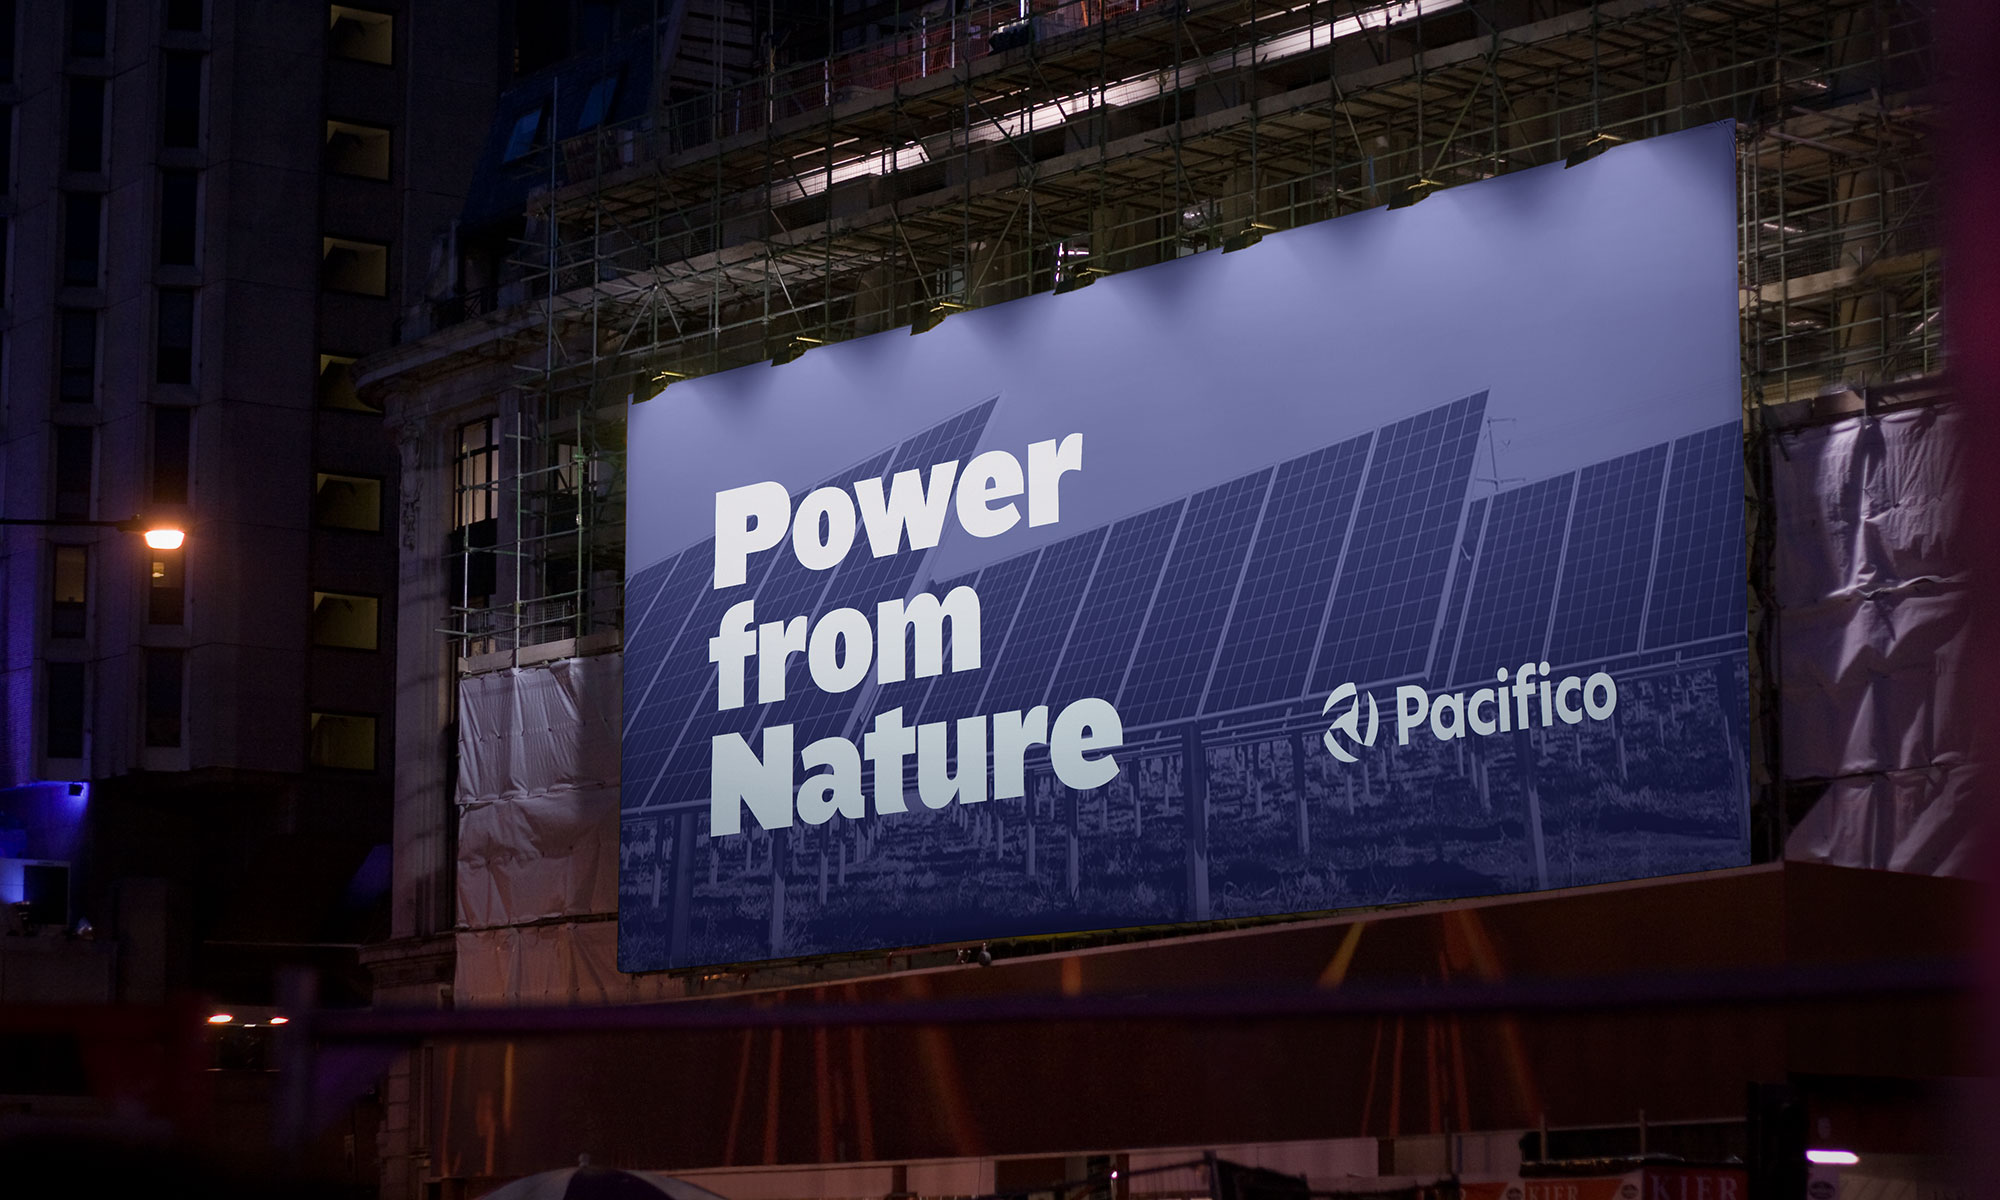 Pacifico Energy billboard